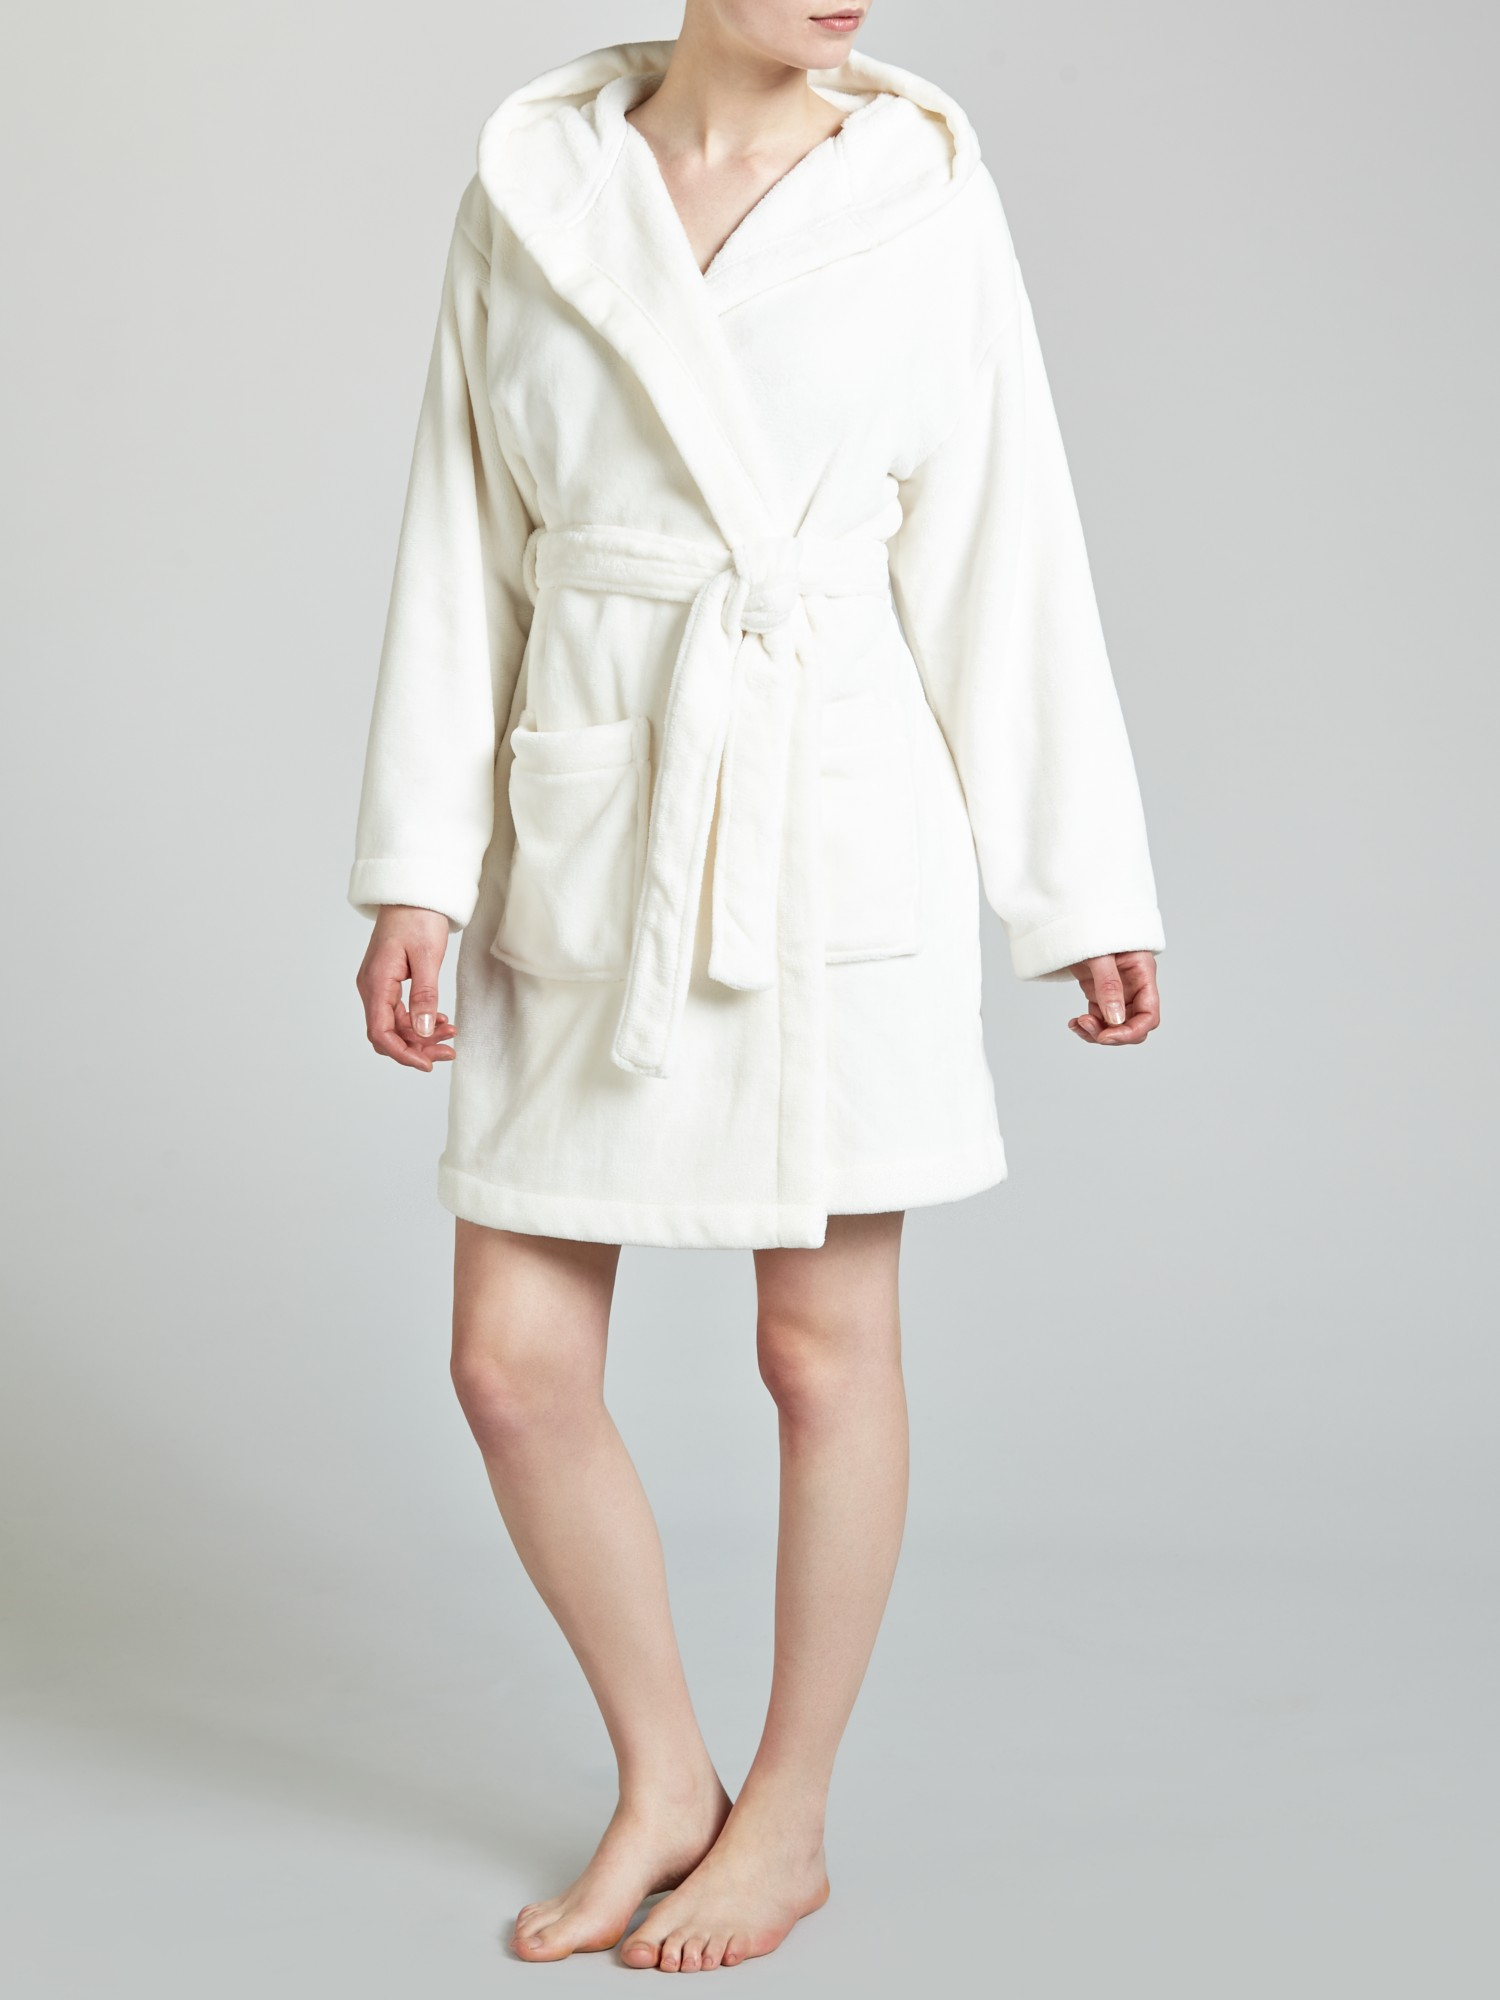 Funky White Short Dressing Gown Image Collection - Images for ...